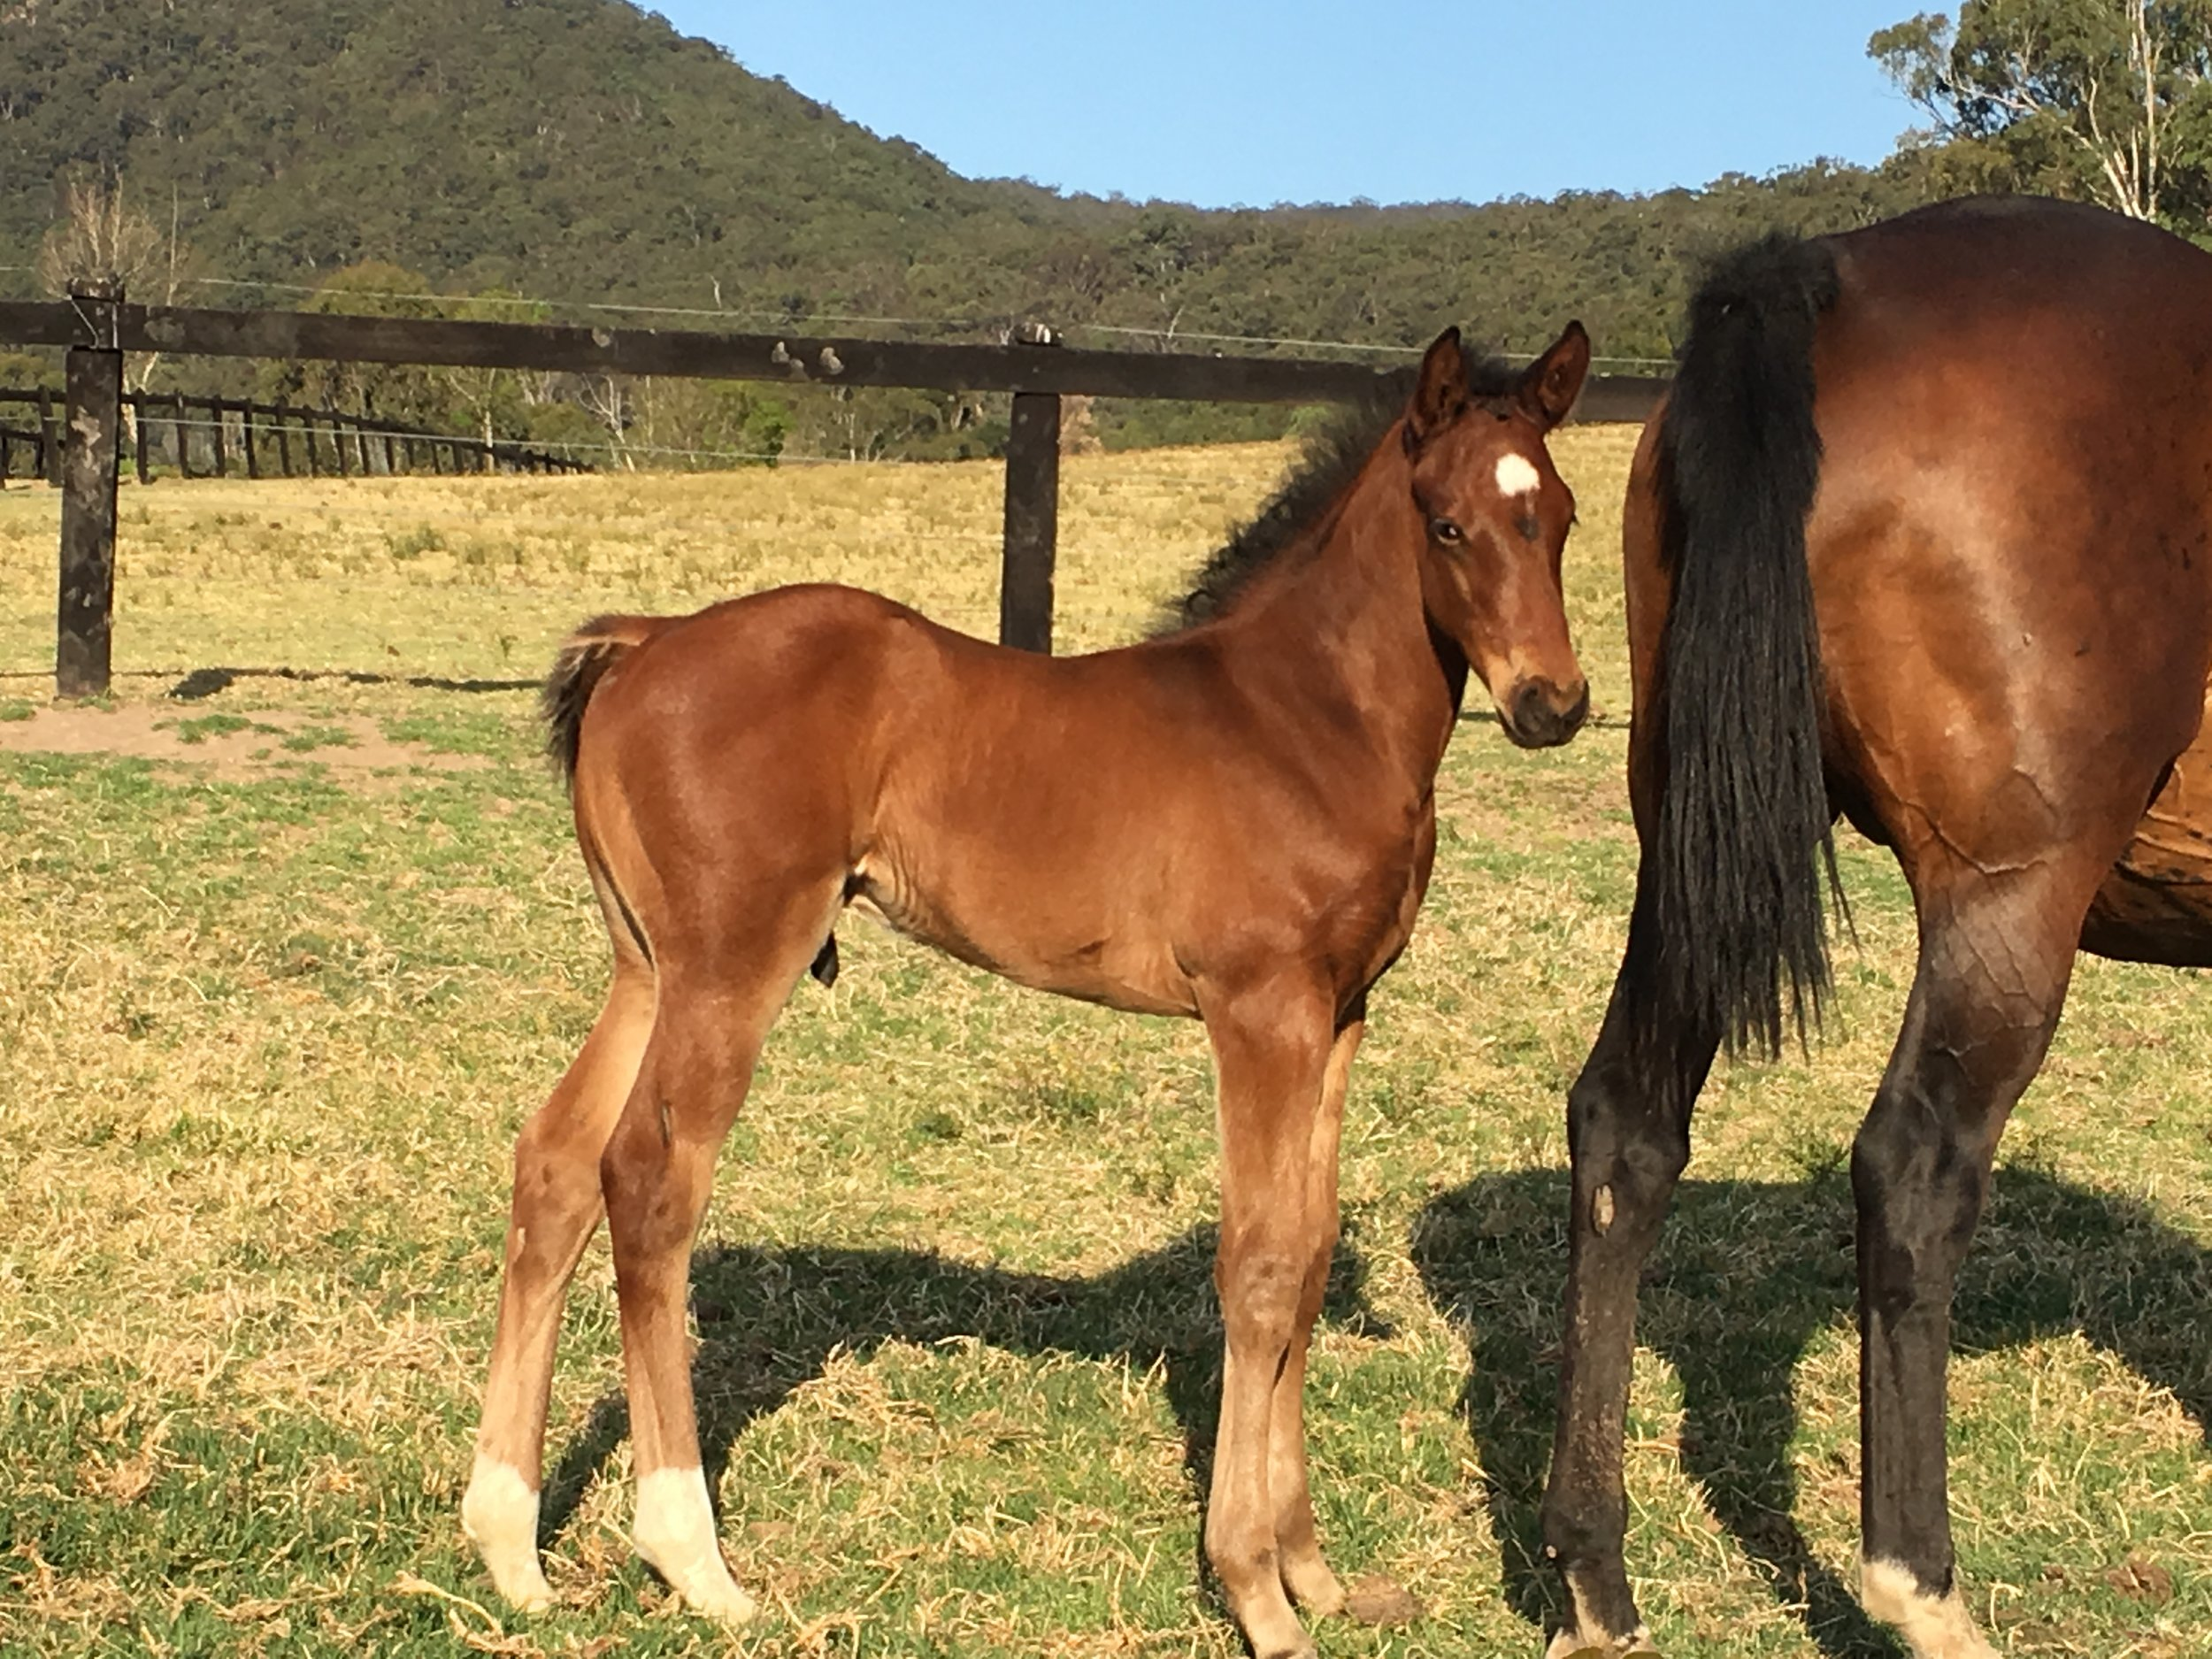 Keeping Score with foal at foot by Deep Field.